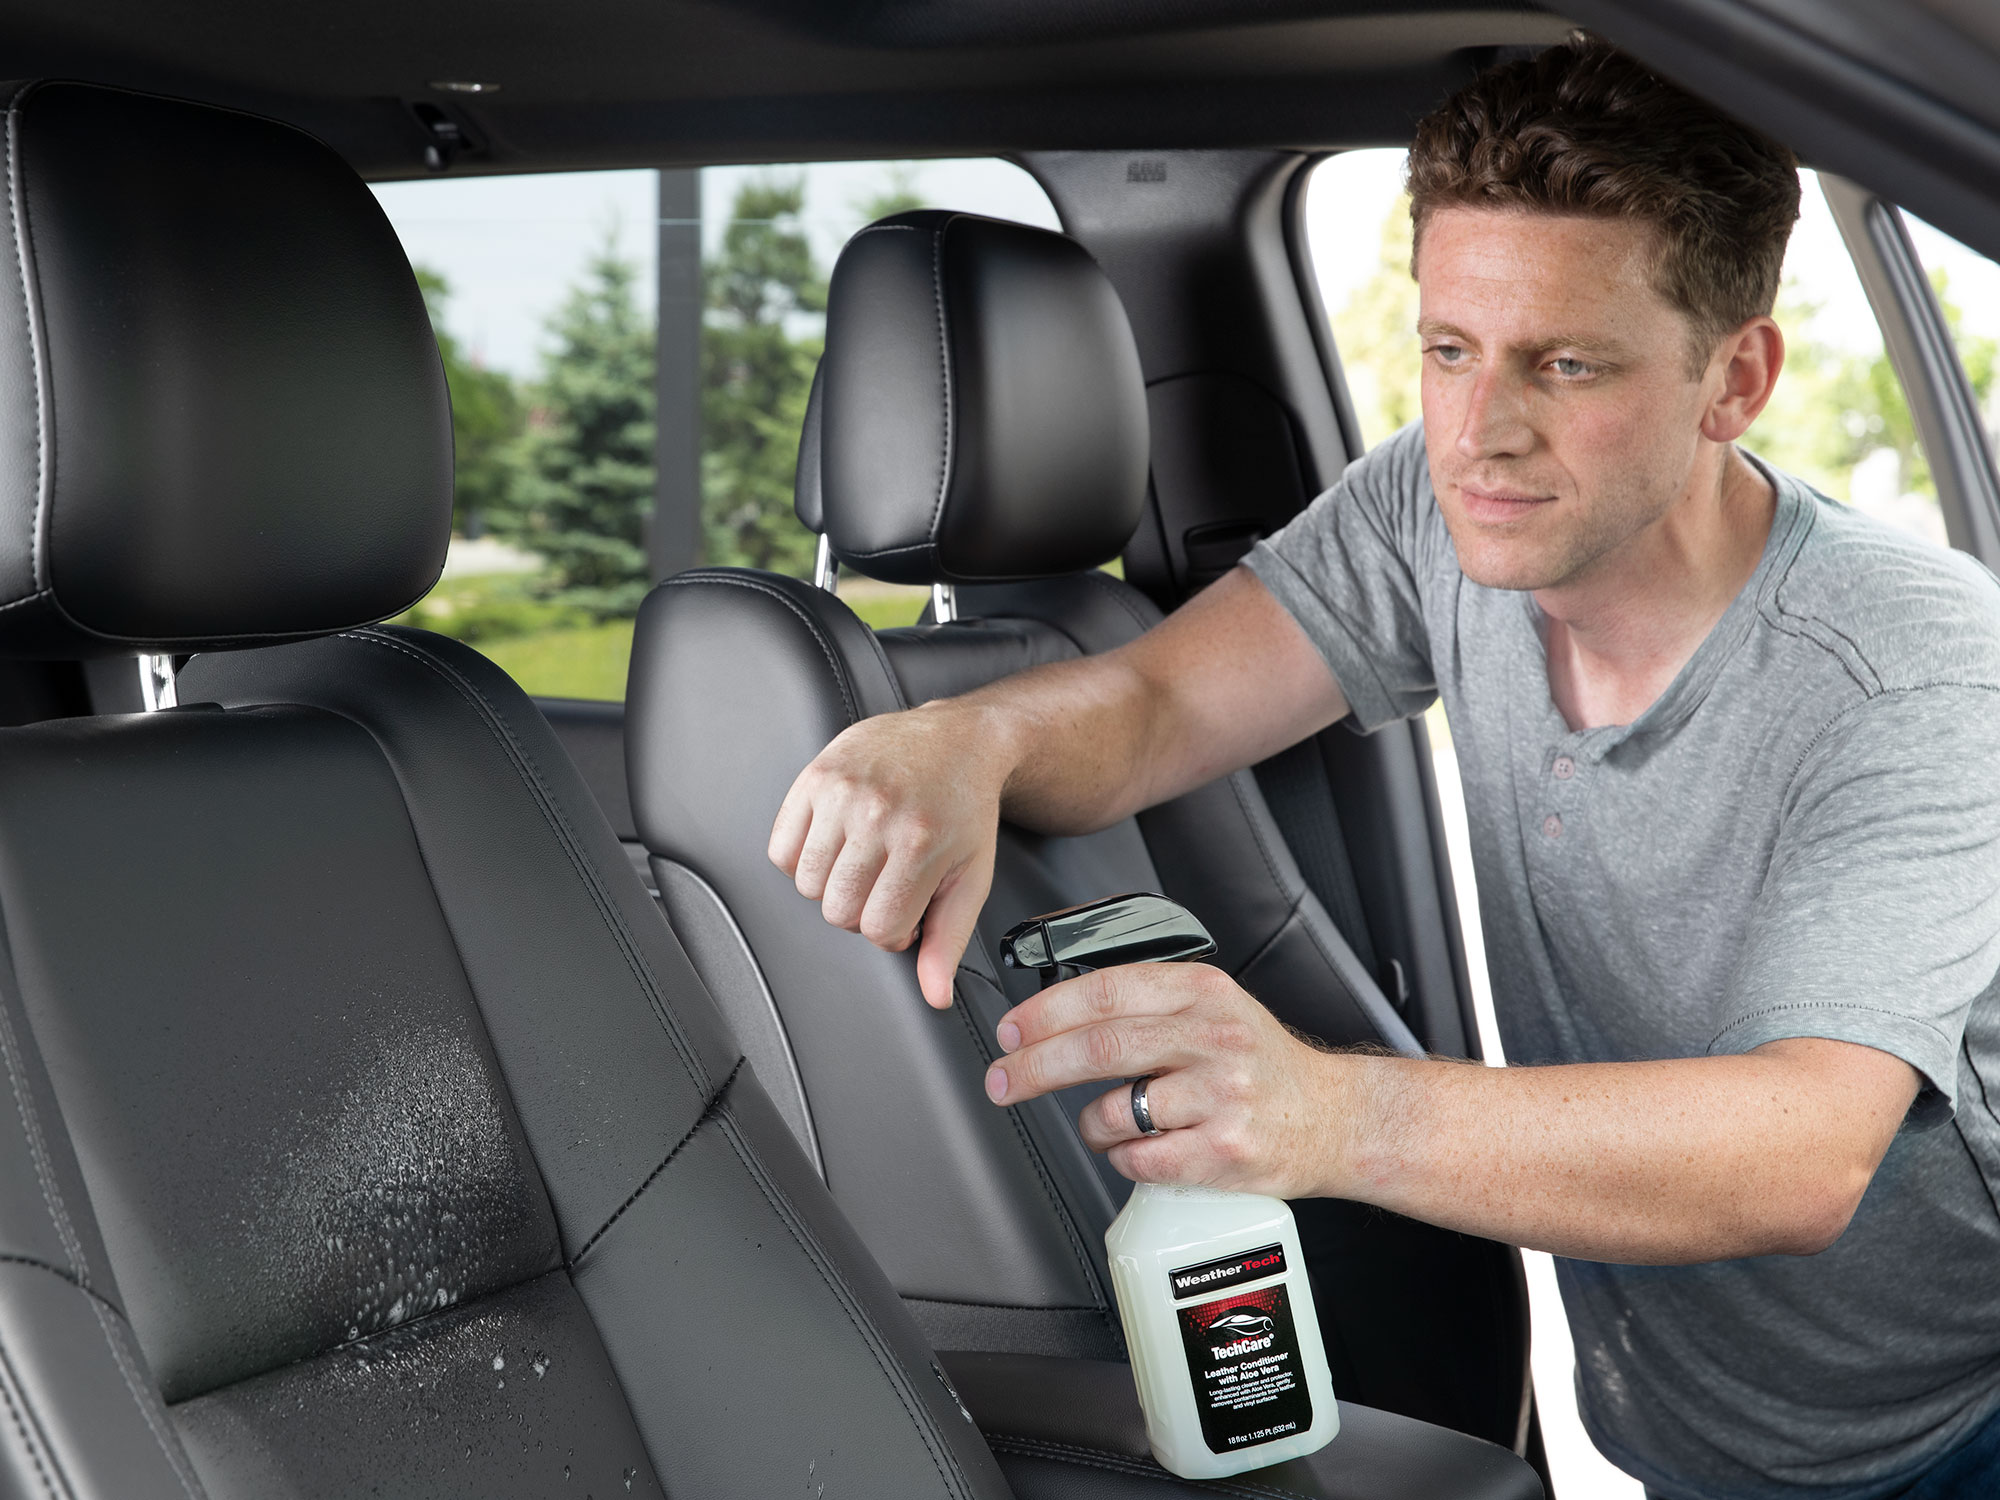 Man Spraying leather conditioner on the passenger seat.